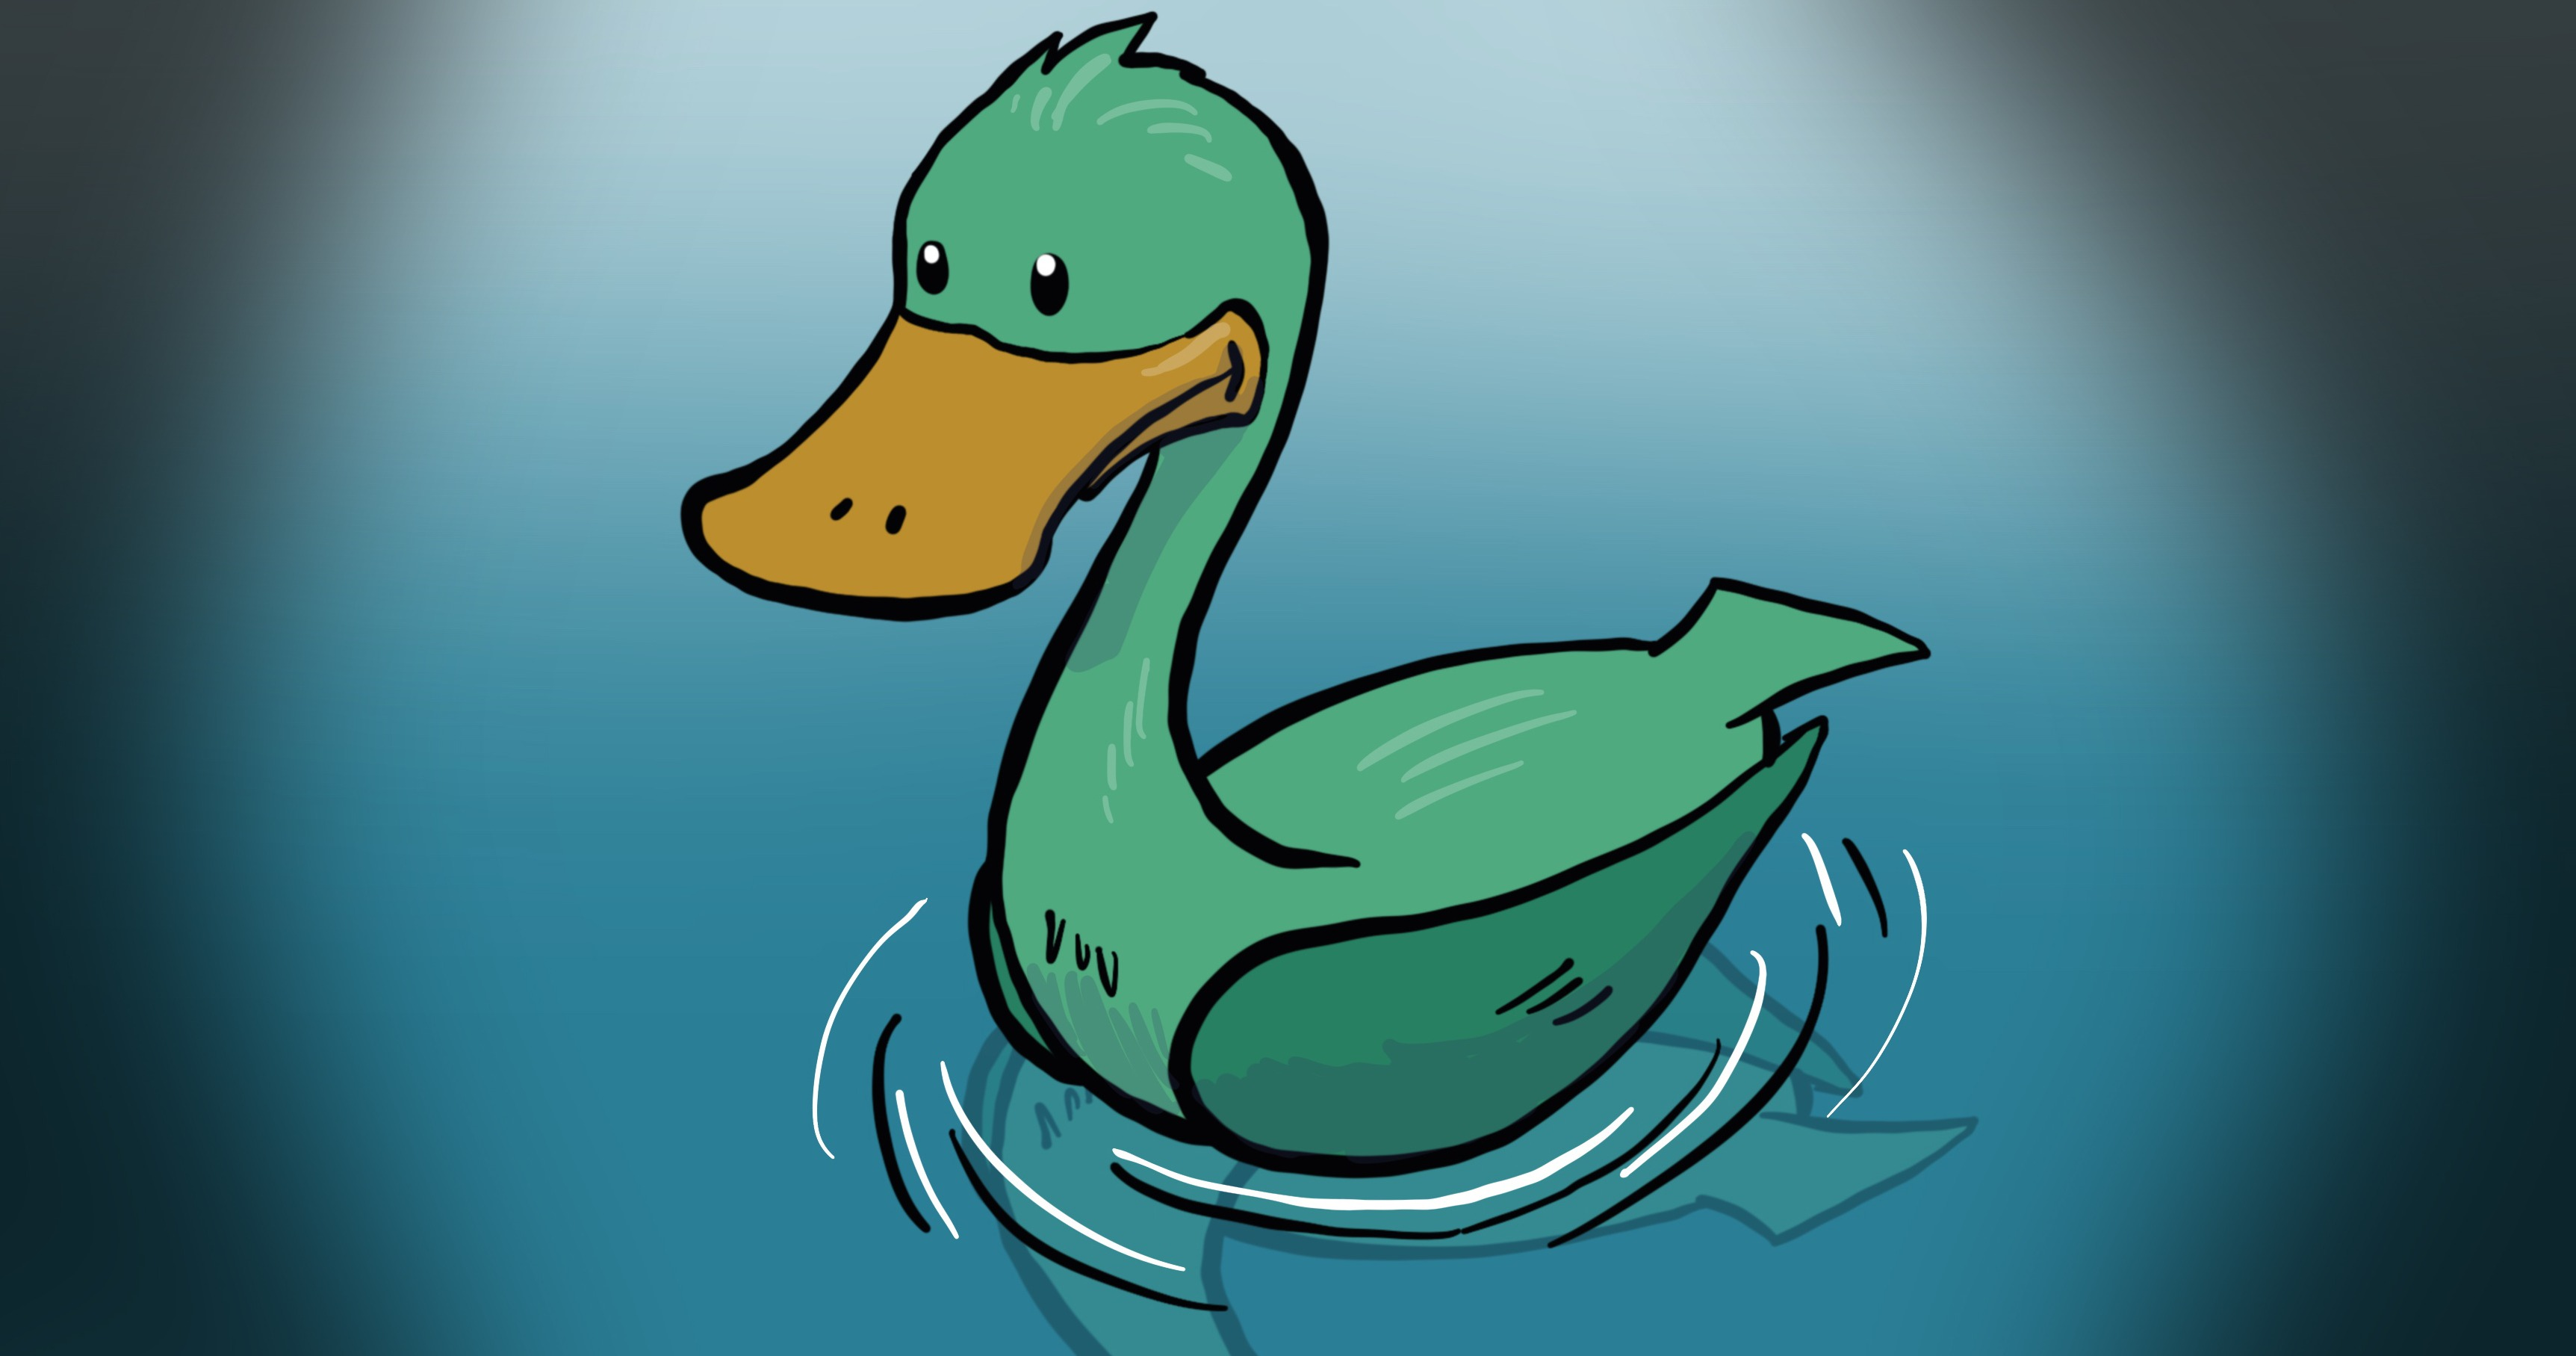 Draw Cartoon Ducks Small Online Class For Ages 7 12 Outschool